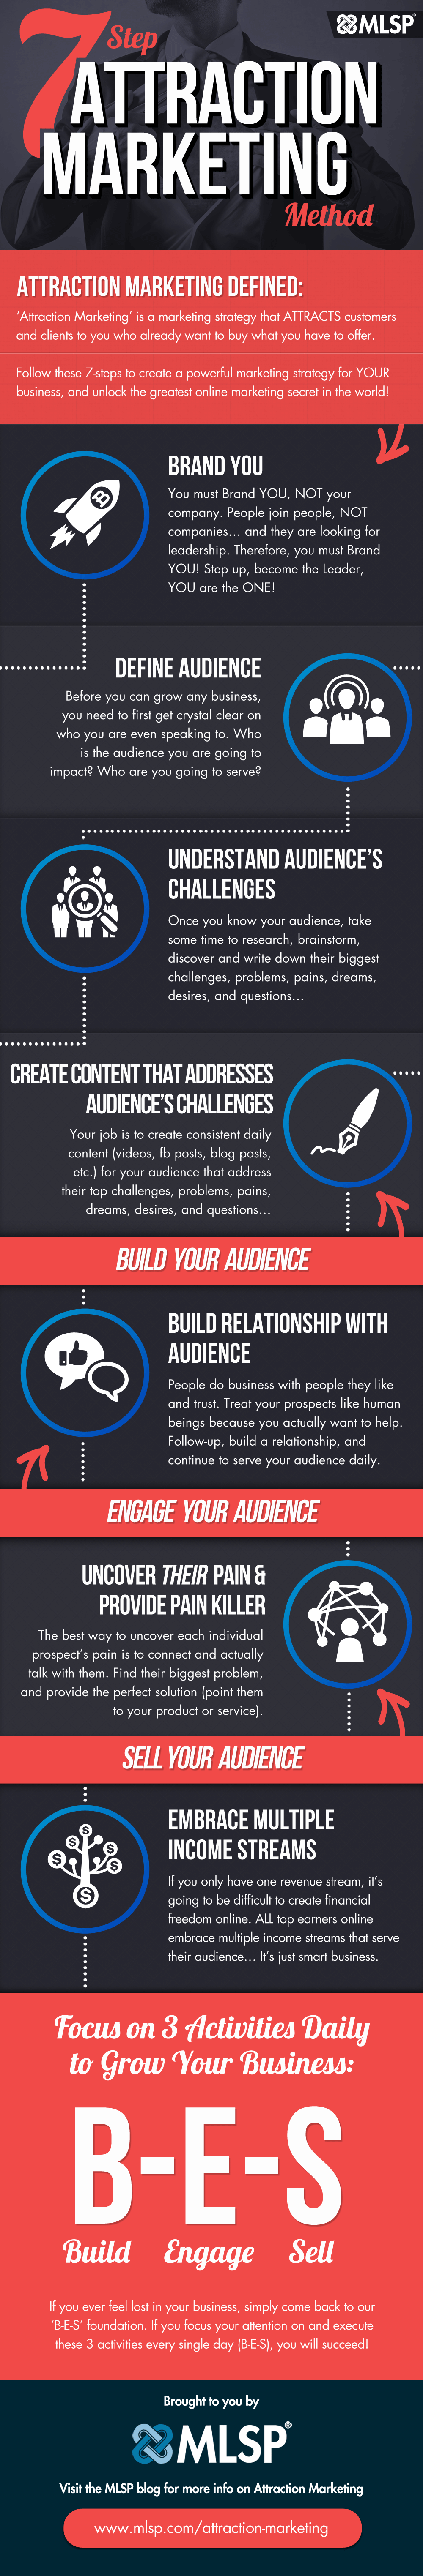 attraction-marketing-infographic